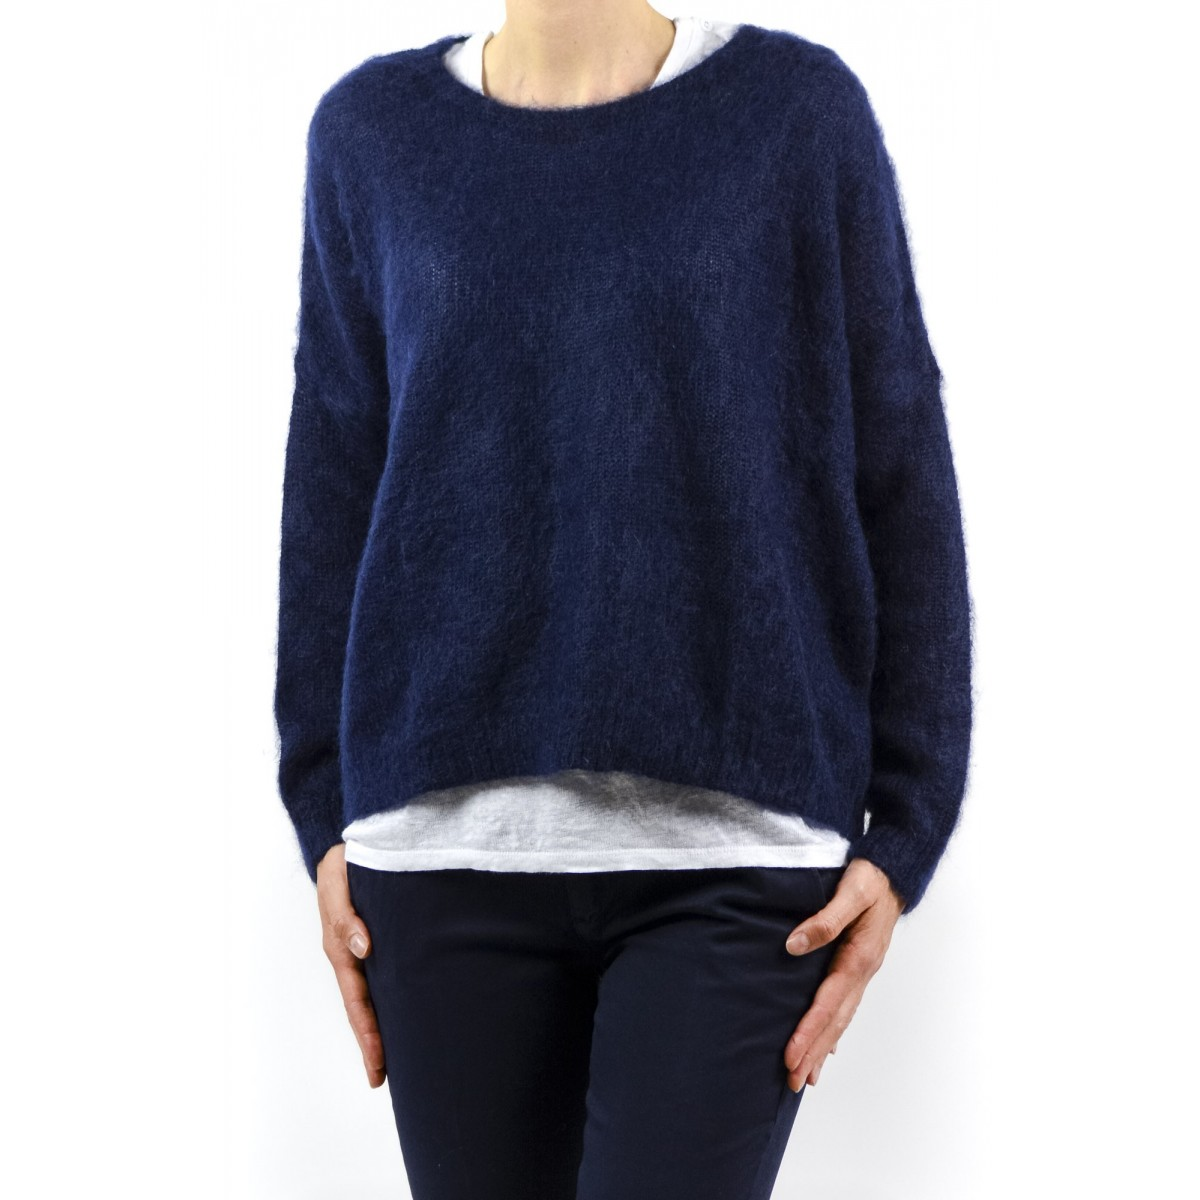 Pullover Department Five Frauen - D11M51 Ff114 100 - Blu